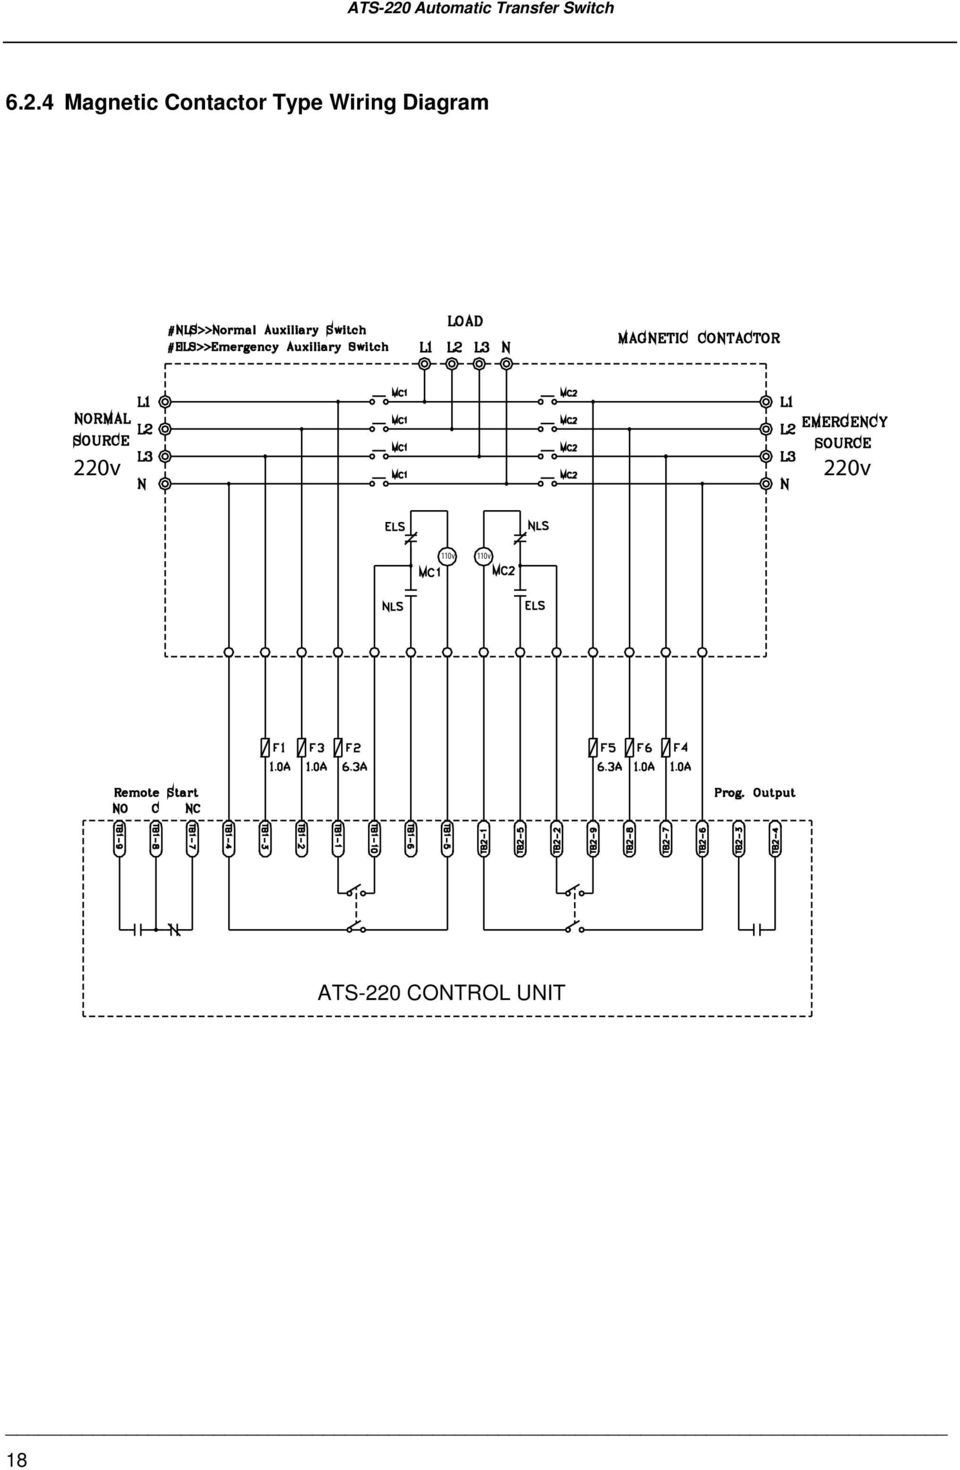 hight resolution of 19 6 3 3p 380v connecting wire diagram mccb type wiring diagram motor normal phase n emergency phase n ats 220 control unit 19